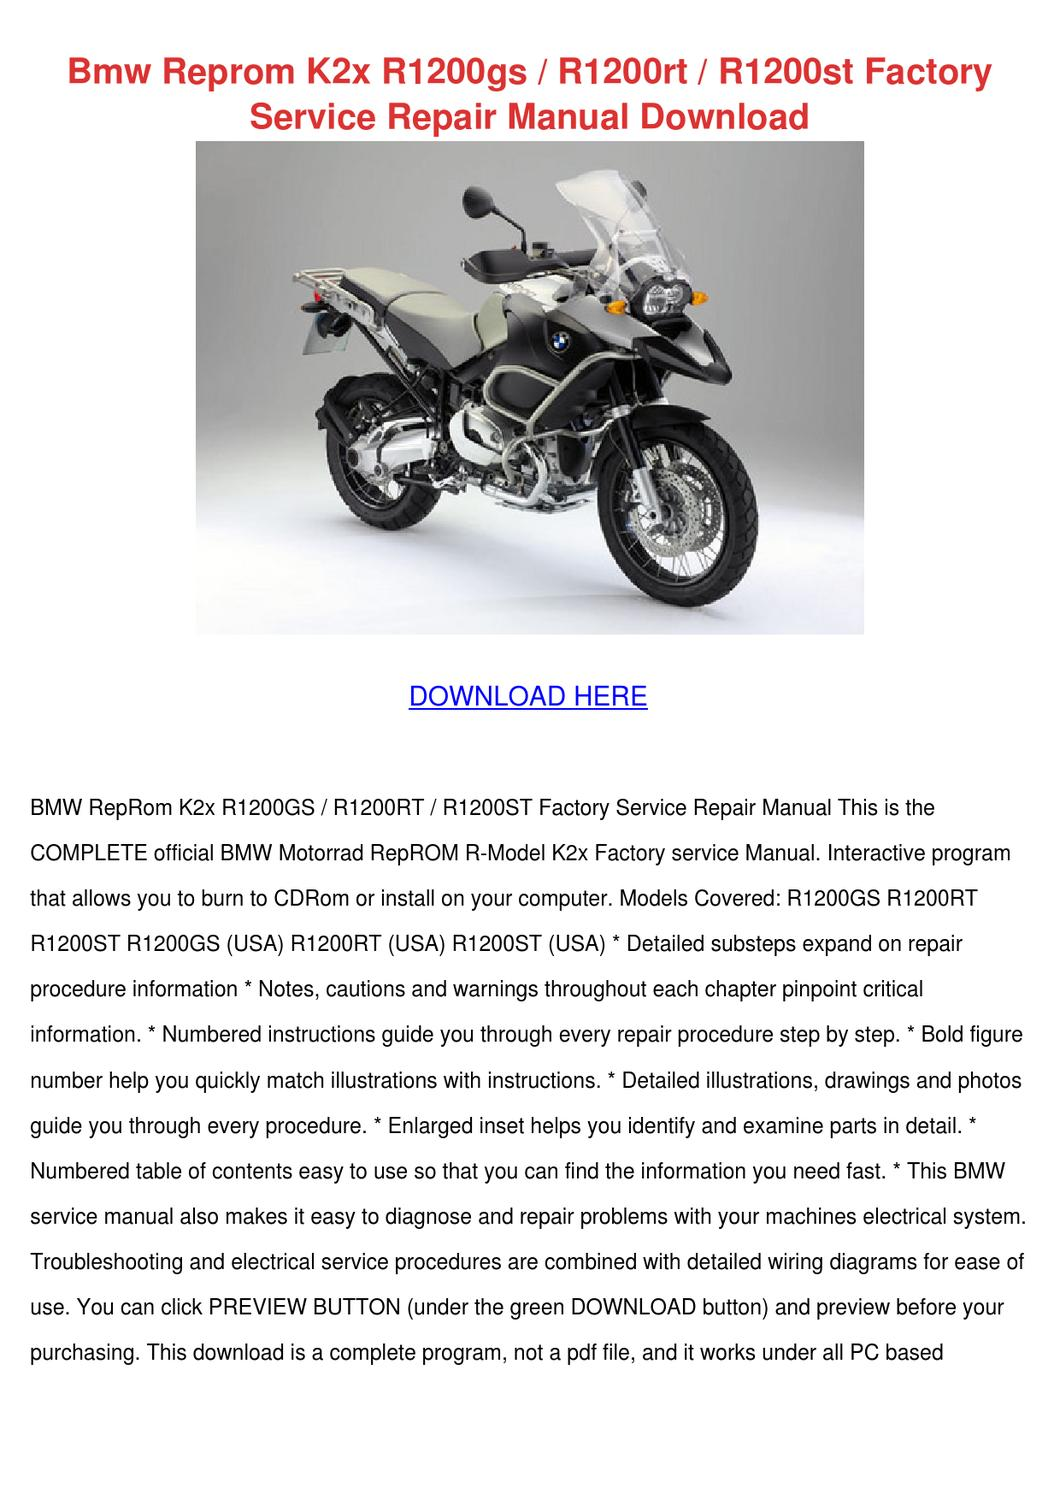 bmw r 1200 gs service manual free download memocrise rh memocrise361 weebly  com bmw r 1200 gs 2005 owners manual bmw r 1200 gs 2015 service manual